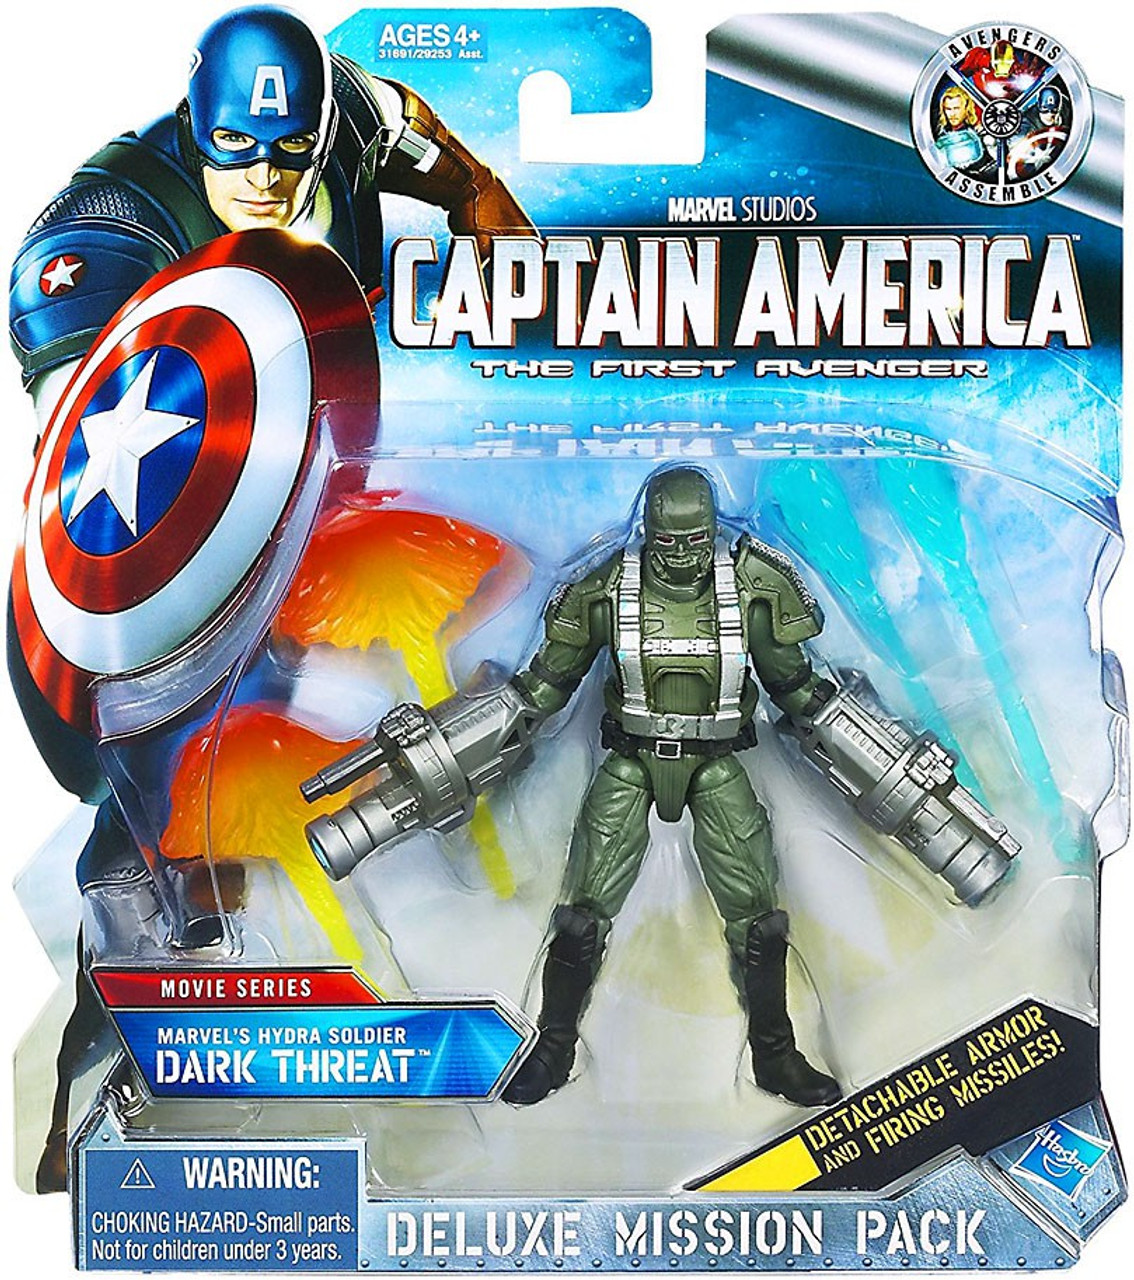 Captain America The First Avenger Deluxe Mission Pack Movie Series Hydra Soldier Dark Threat Action Figure